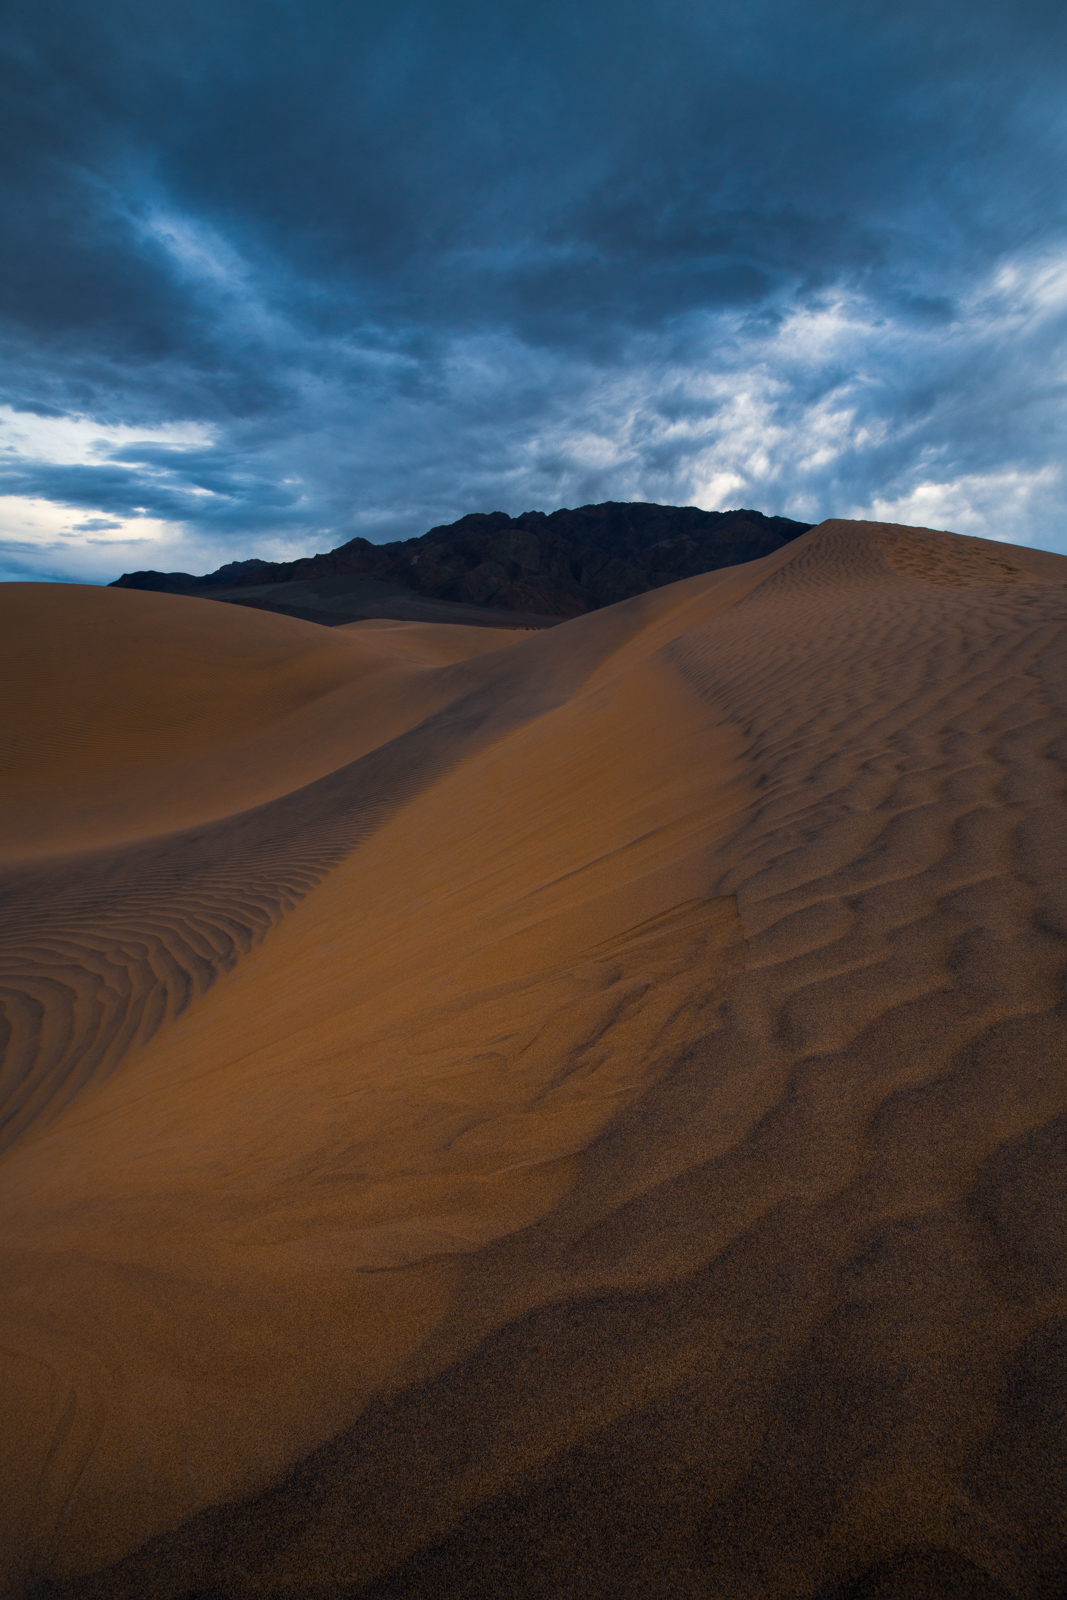 Approaching storm clouds hover over the Mesquite Dunes in Death Valley.